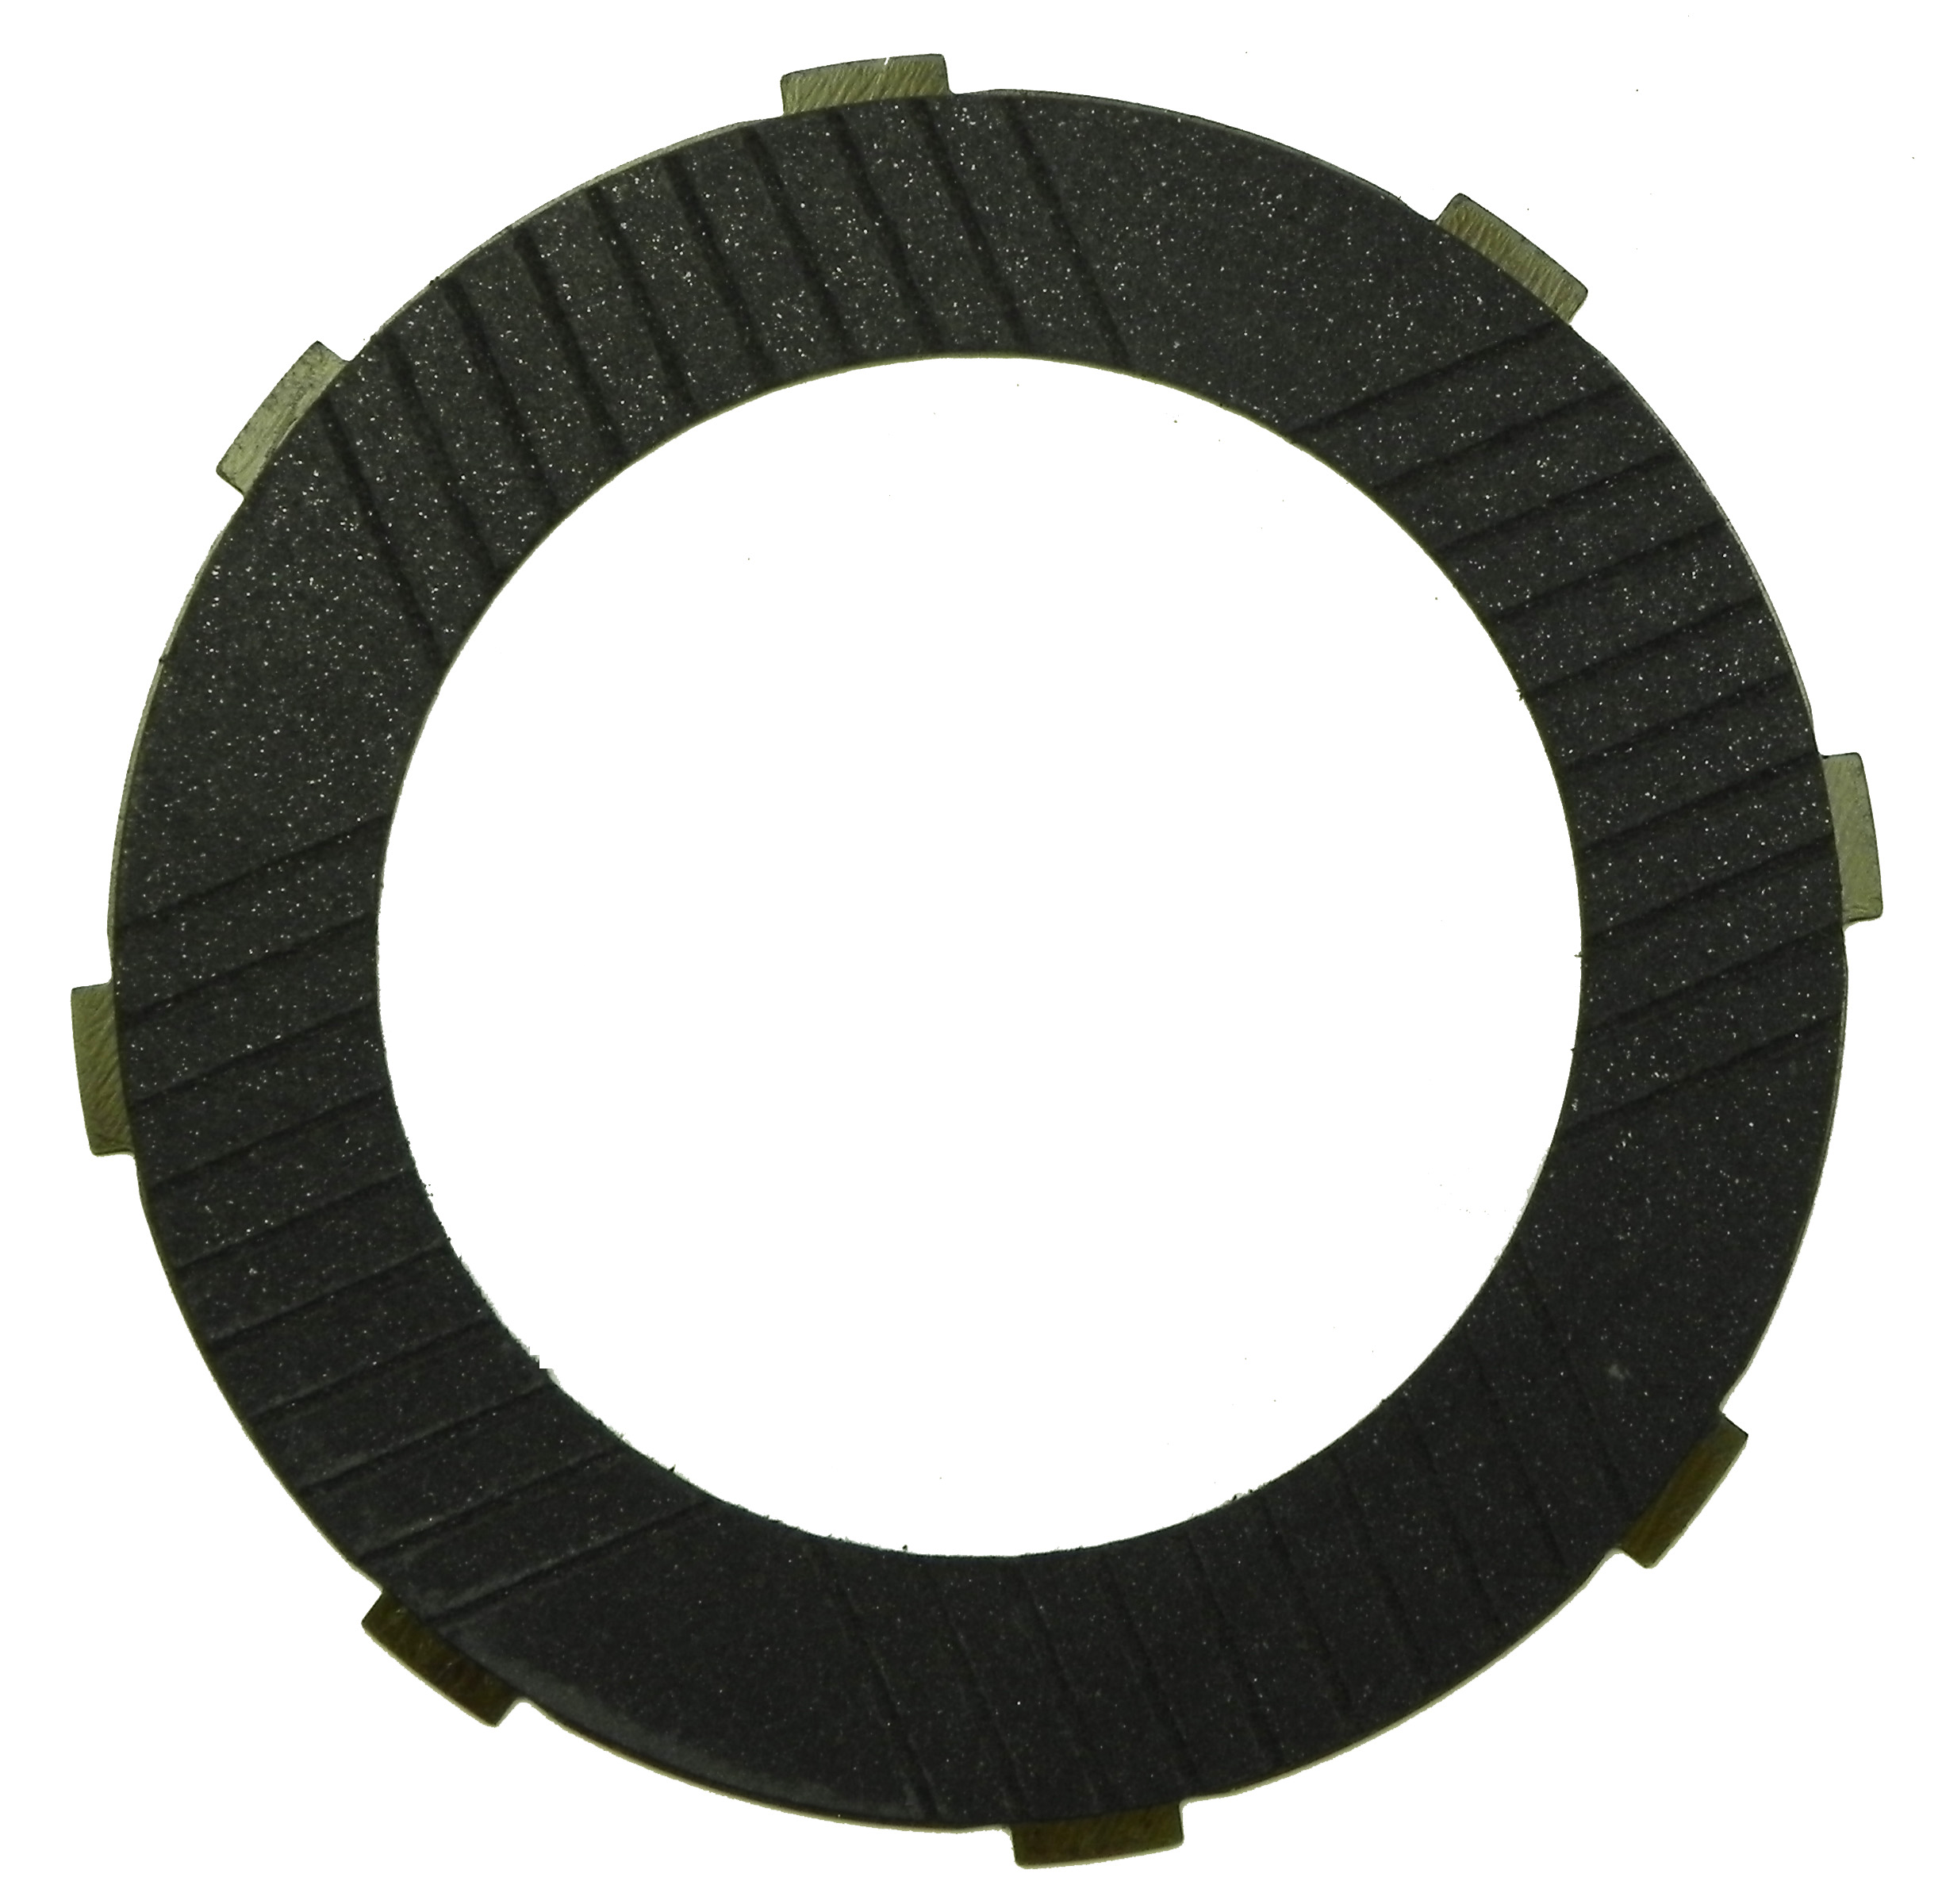 R558140 | 1998-ON Friction Clutch Plate High Energy Forward Single Sided, OD Spline High Energy